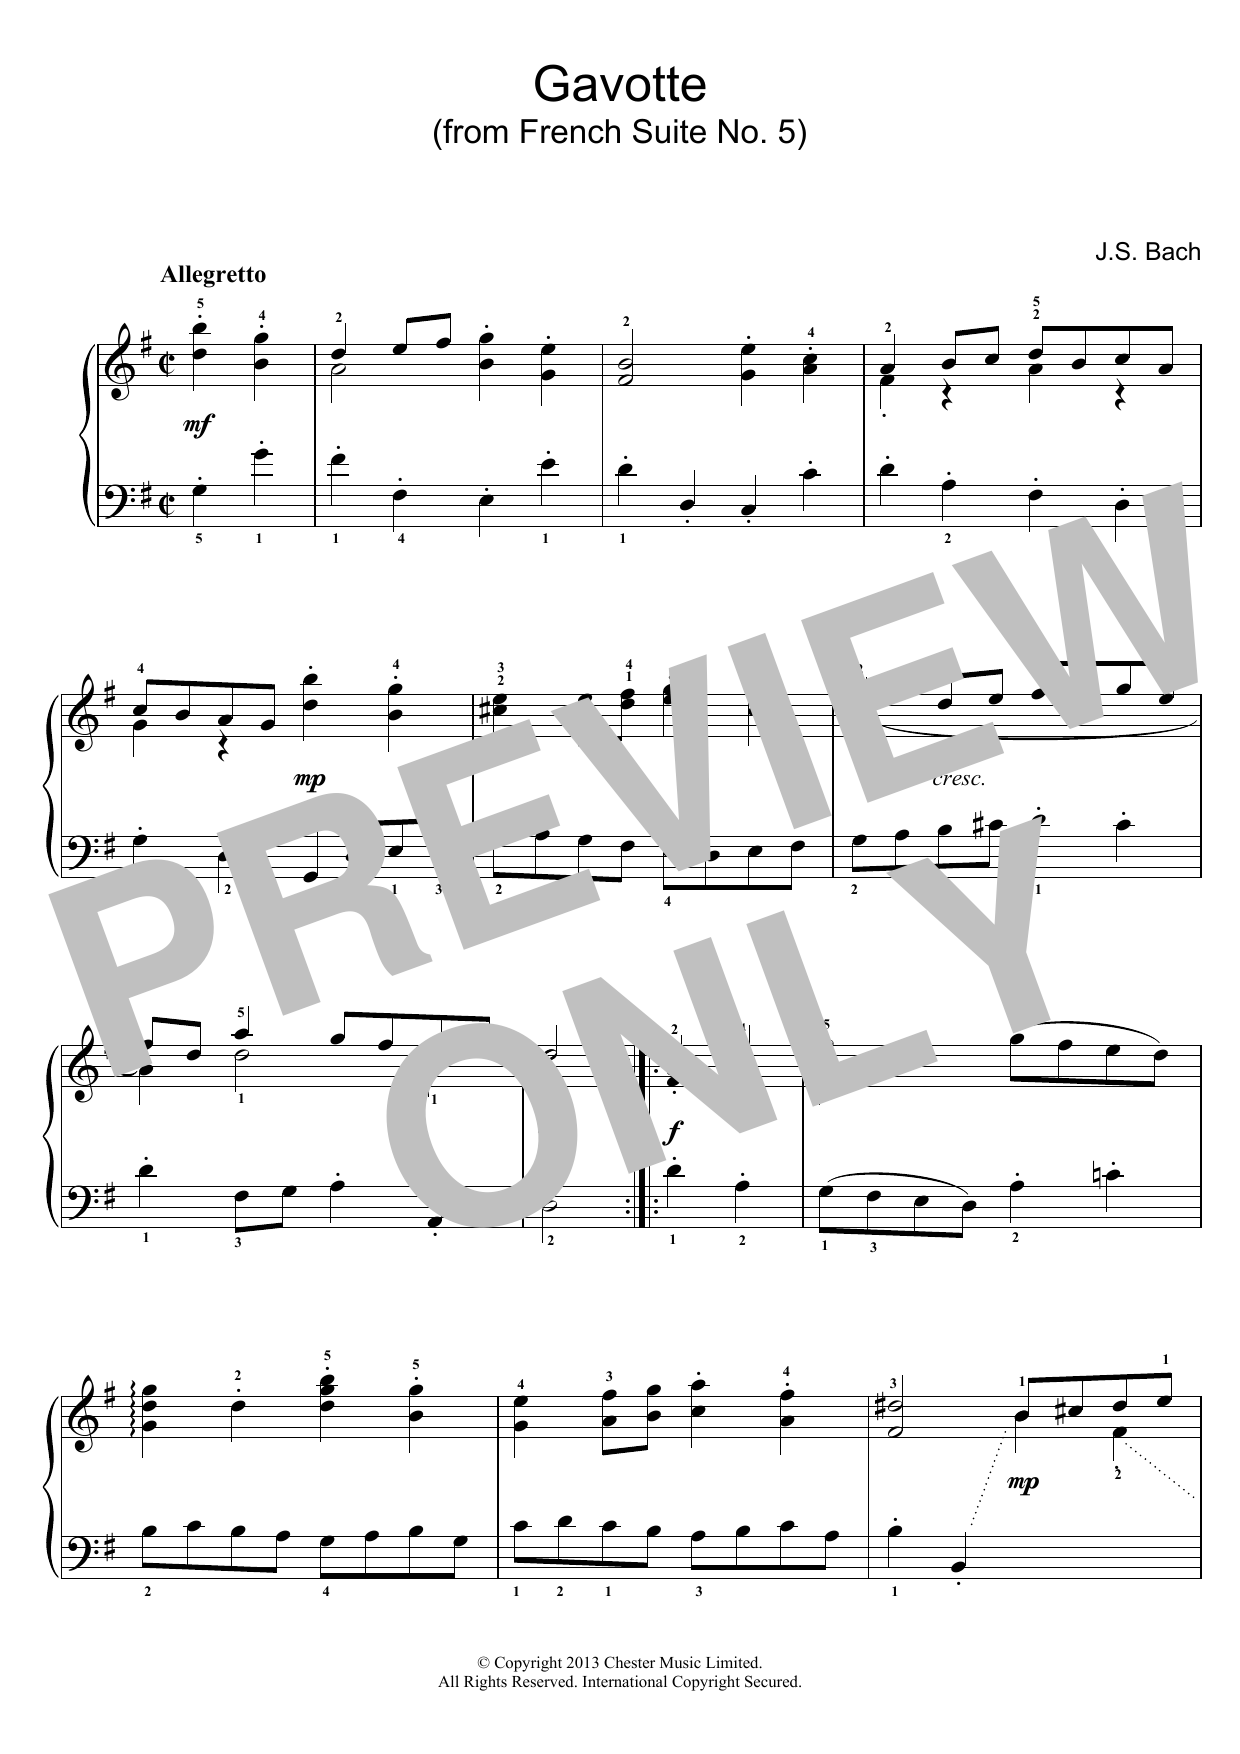 Gavotte (from French Suite No. 5) sheet music